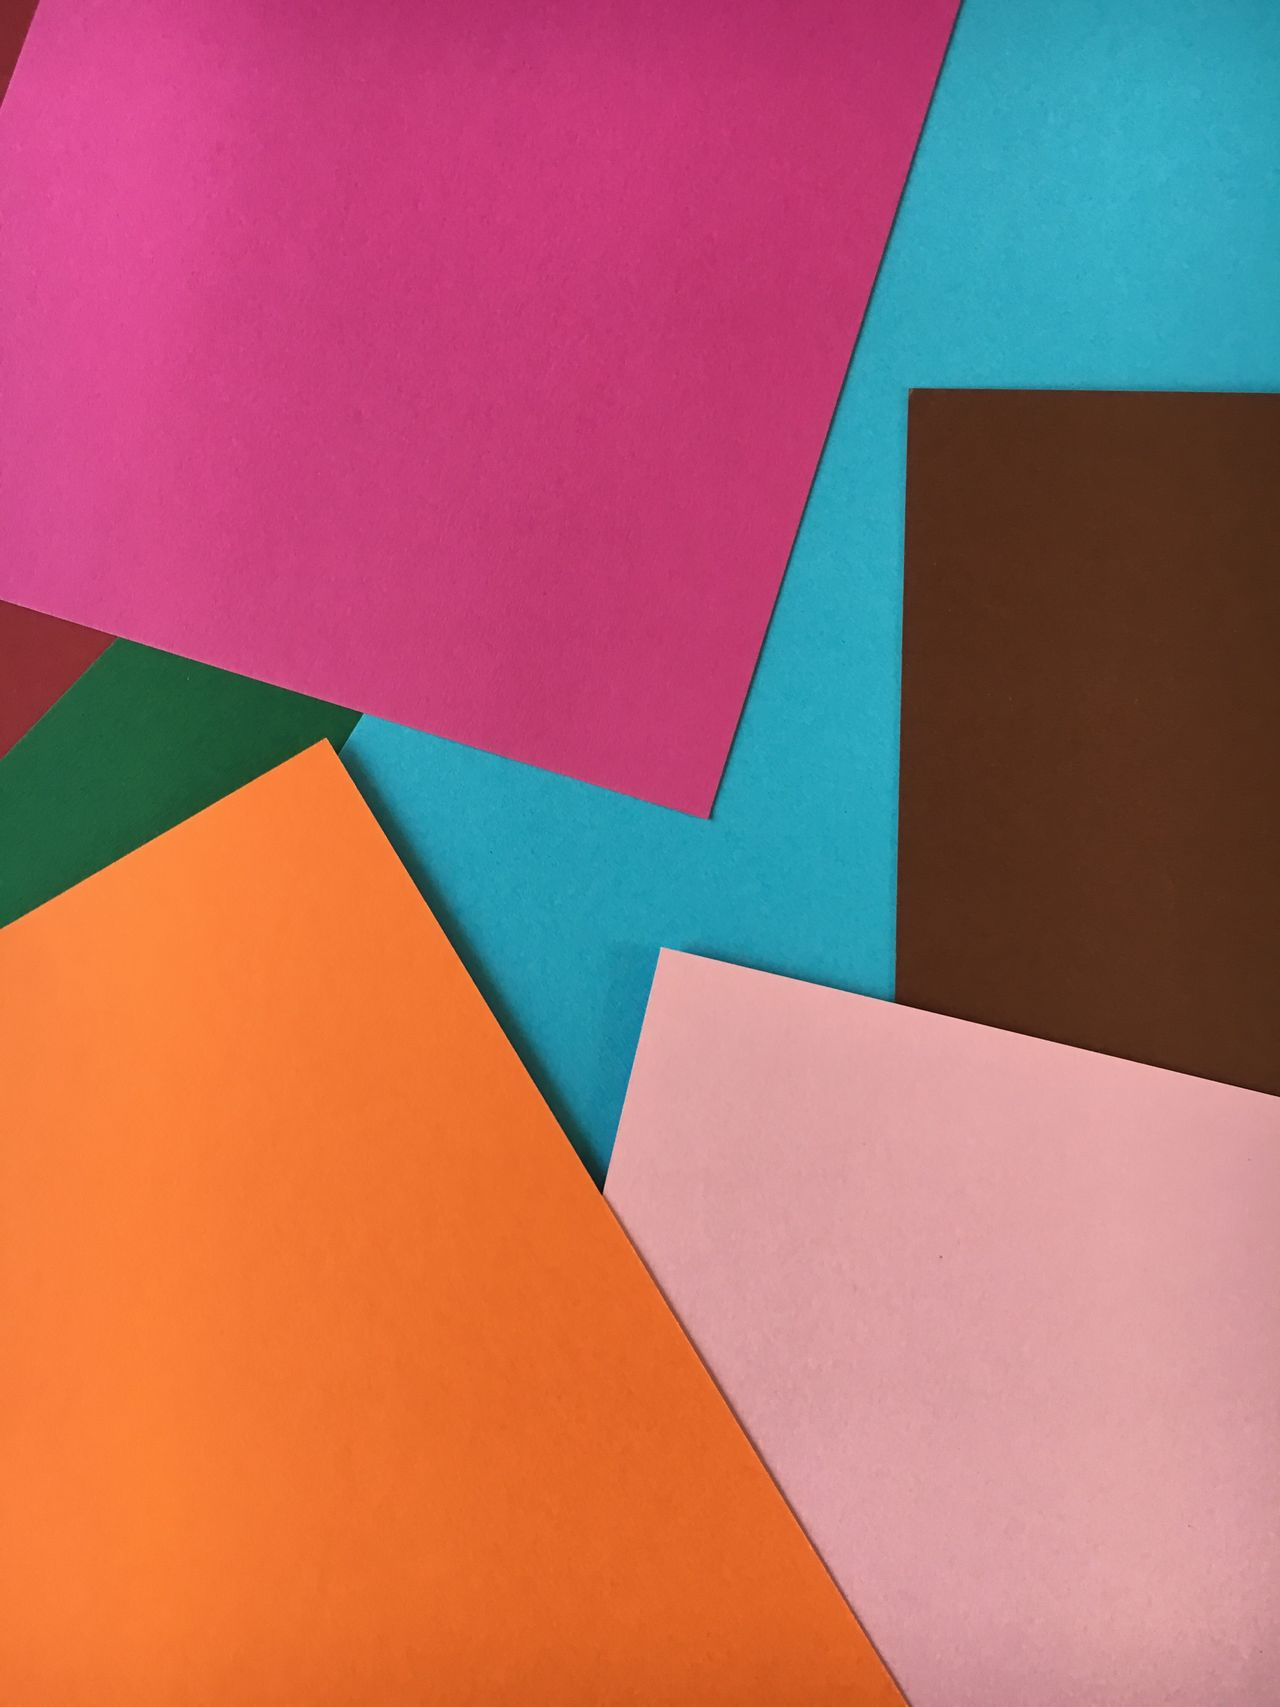 Multi Colored Paper No People Low Angle View Close-up Backgrounds Indoors  Architecture Day Colorful Pattern Pieces Art, Drawing, Creativity Background Pattern, Texture, Shape And Form Papers Crafts ArtWork Creativity Creative Handcrafted Built Structure Tinker Shadow Communication Pattern